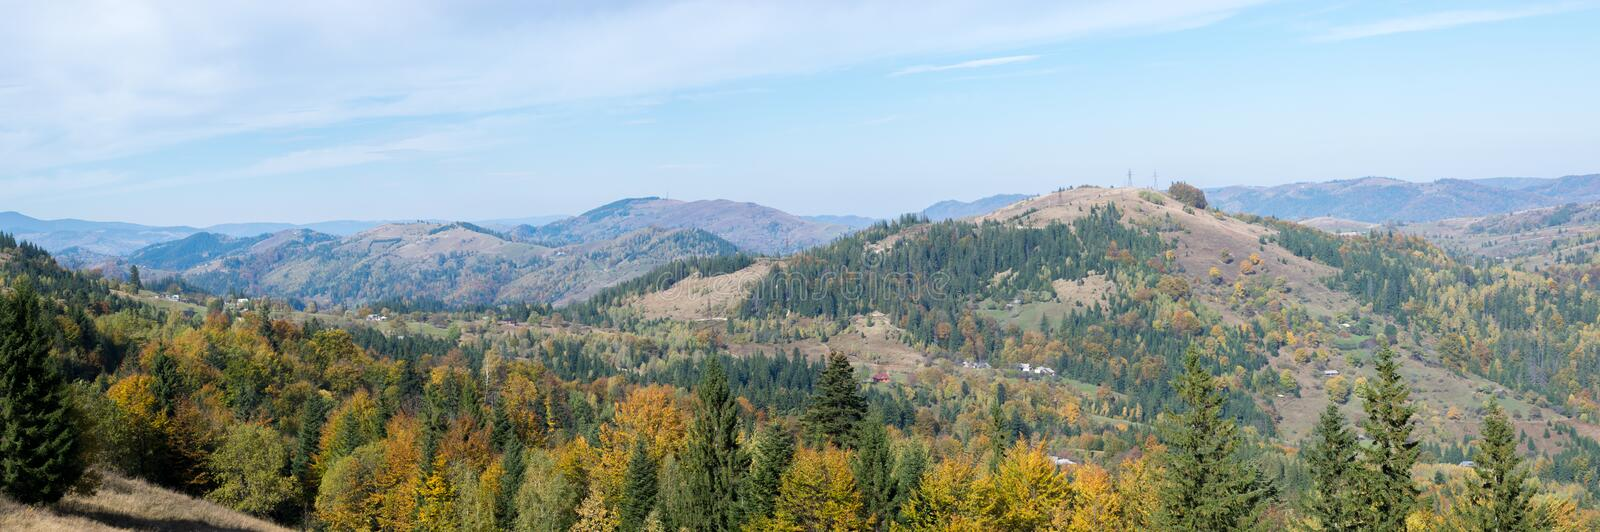 Panorama - Carpathian Mountains landscape in Autumn stock photography